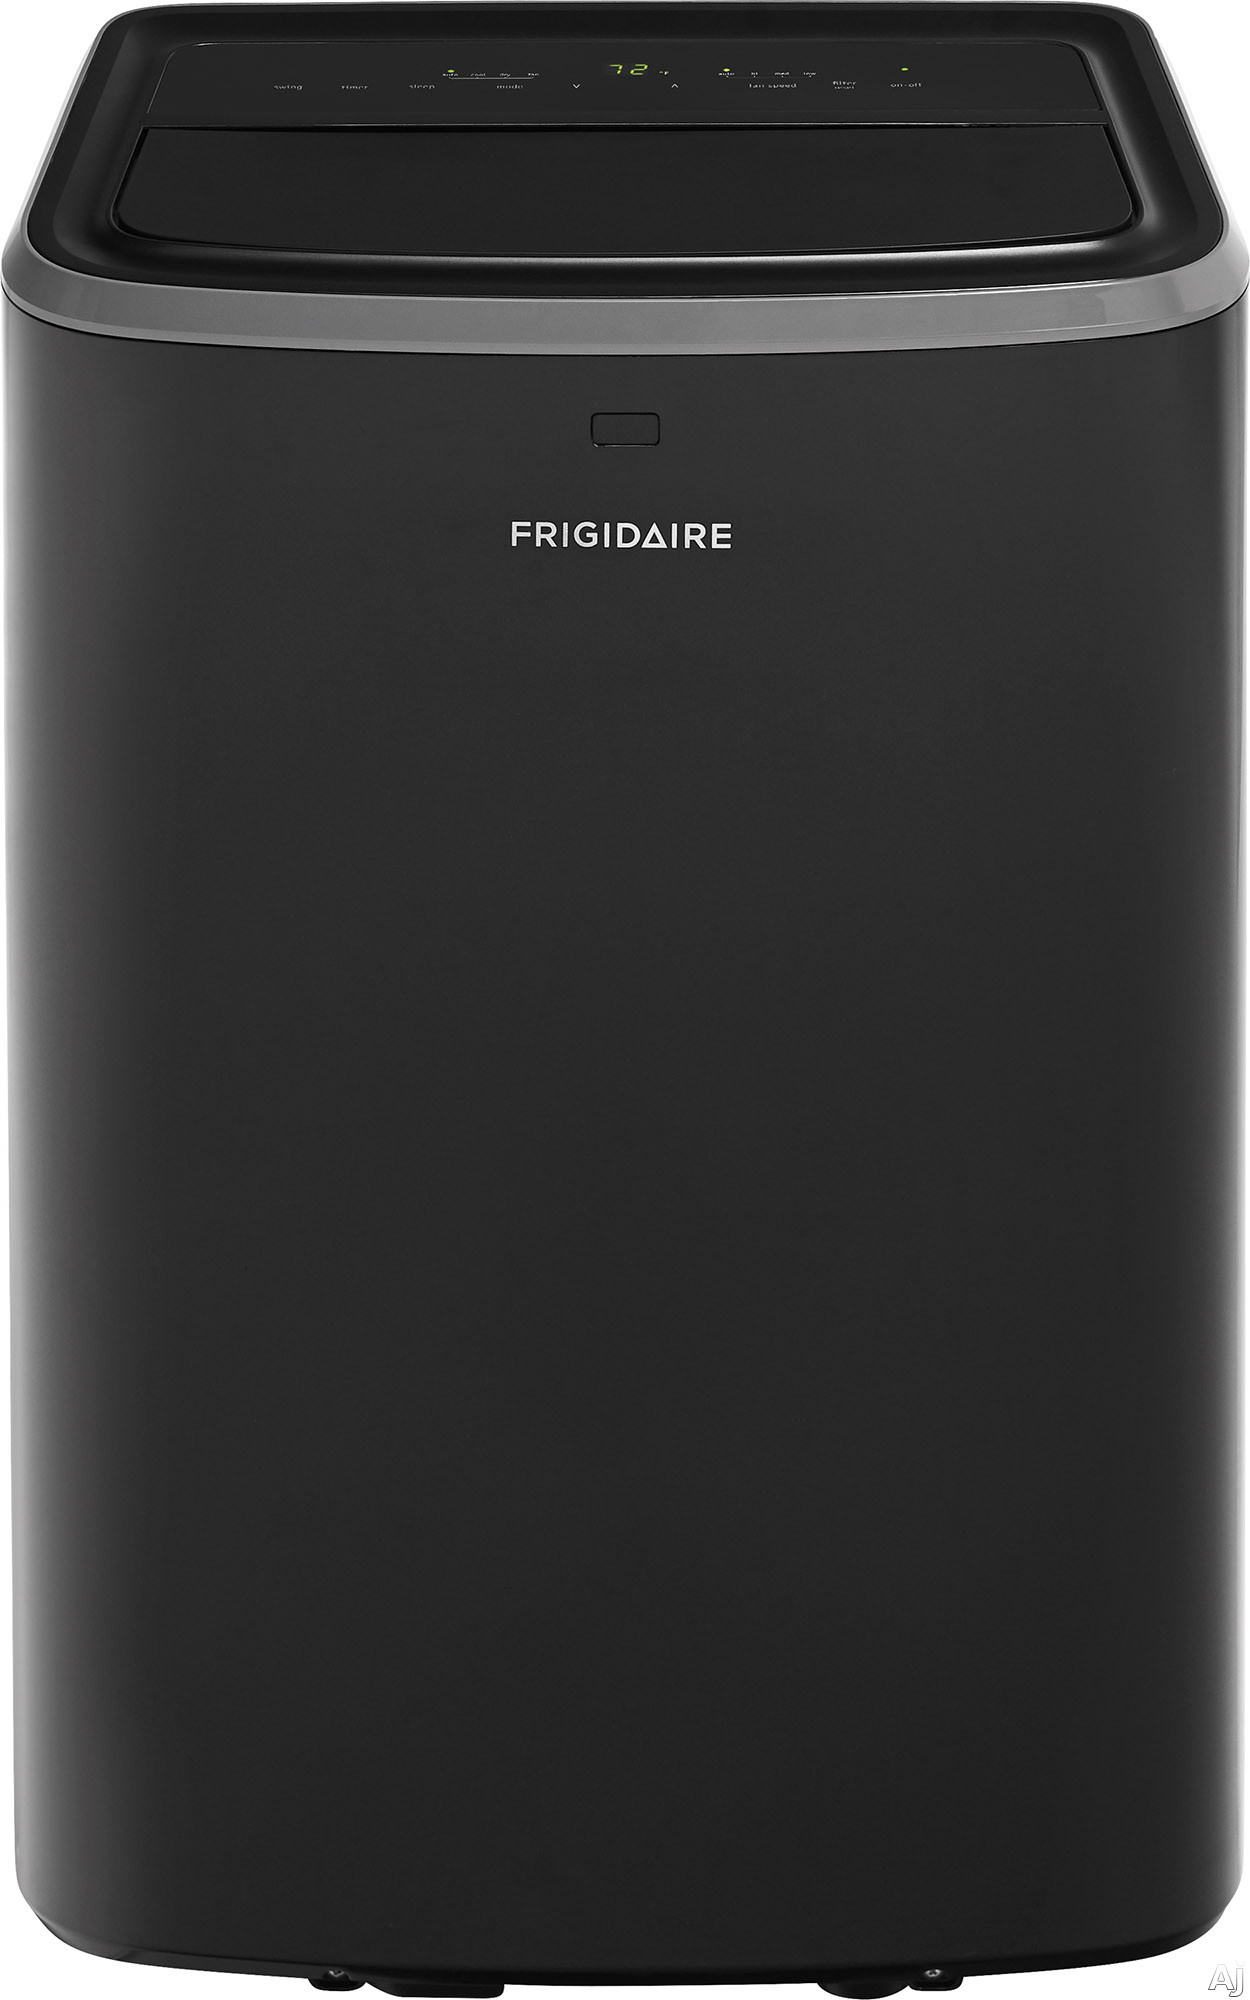 Frigidaire FFPA1222U1 12,000 BTU Portable Room Air Conditioner with SpaceWise® Portable Design, Effortless™ Temperature Control, Programmable 24-Hour Timer, Effortless™ Clean Filter, Ef